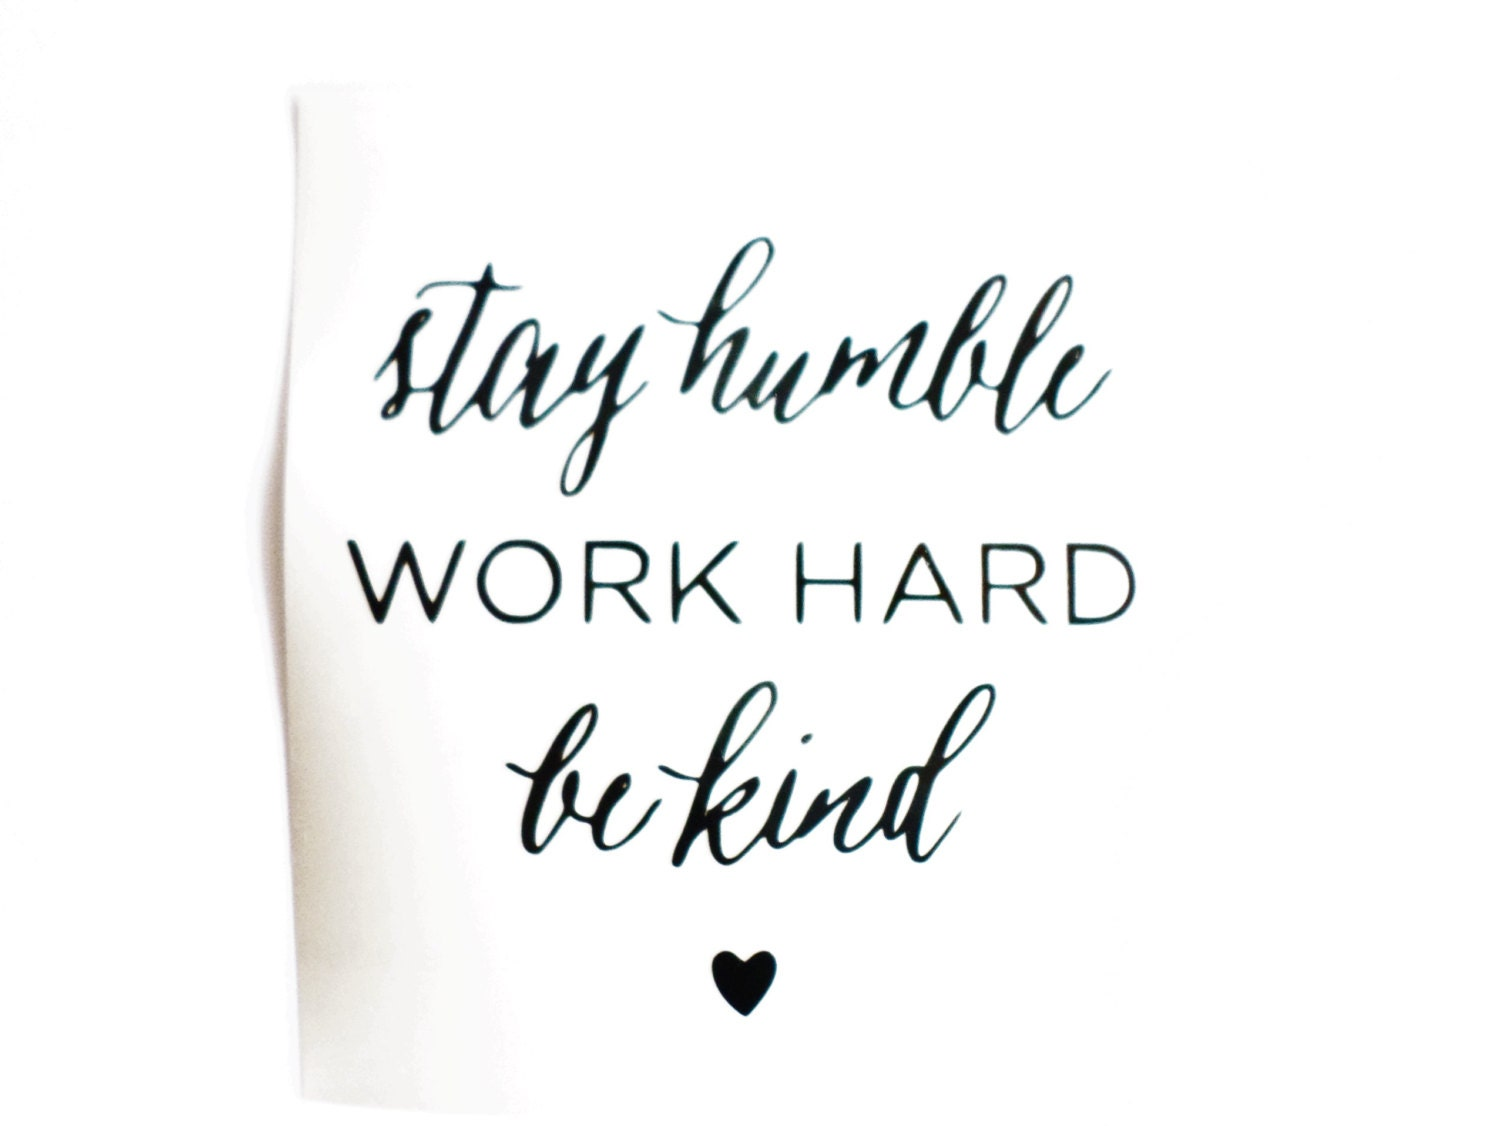 Stay humble work hard be kind decal inspirational decals vinyl - Stay humble wallpaper ...